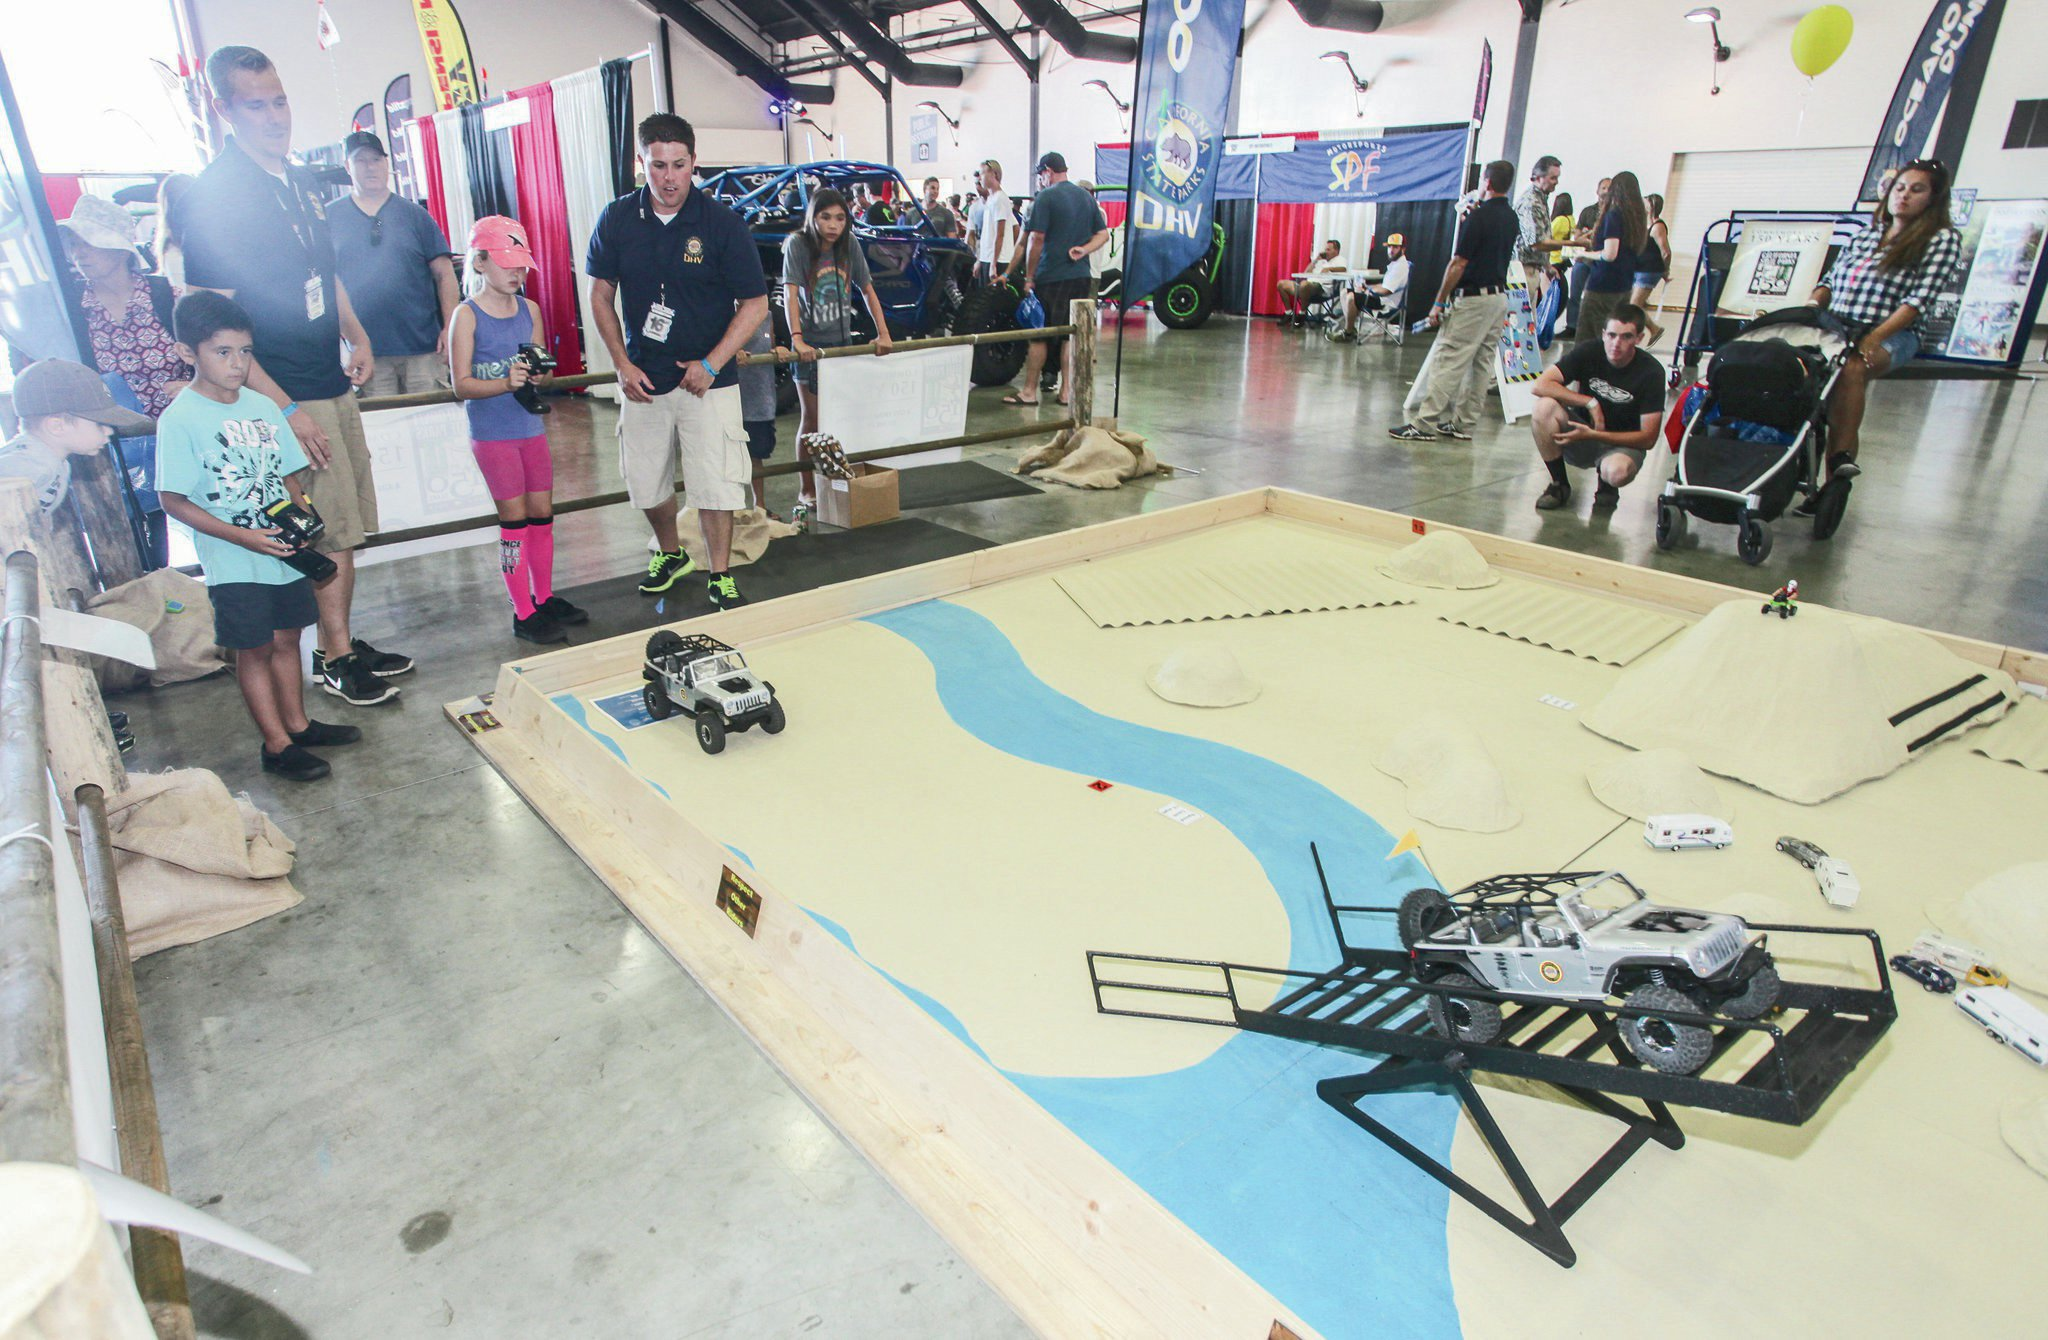 The California OHV folk had this cool radio-controlled course ready for the kids to have fun on.